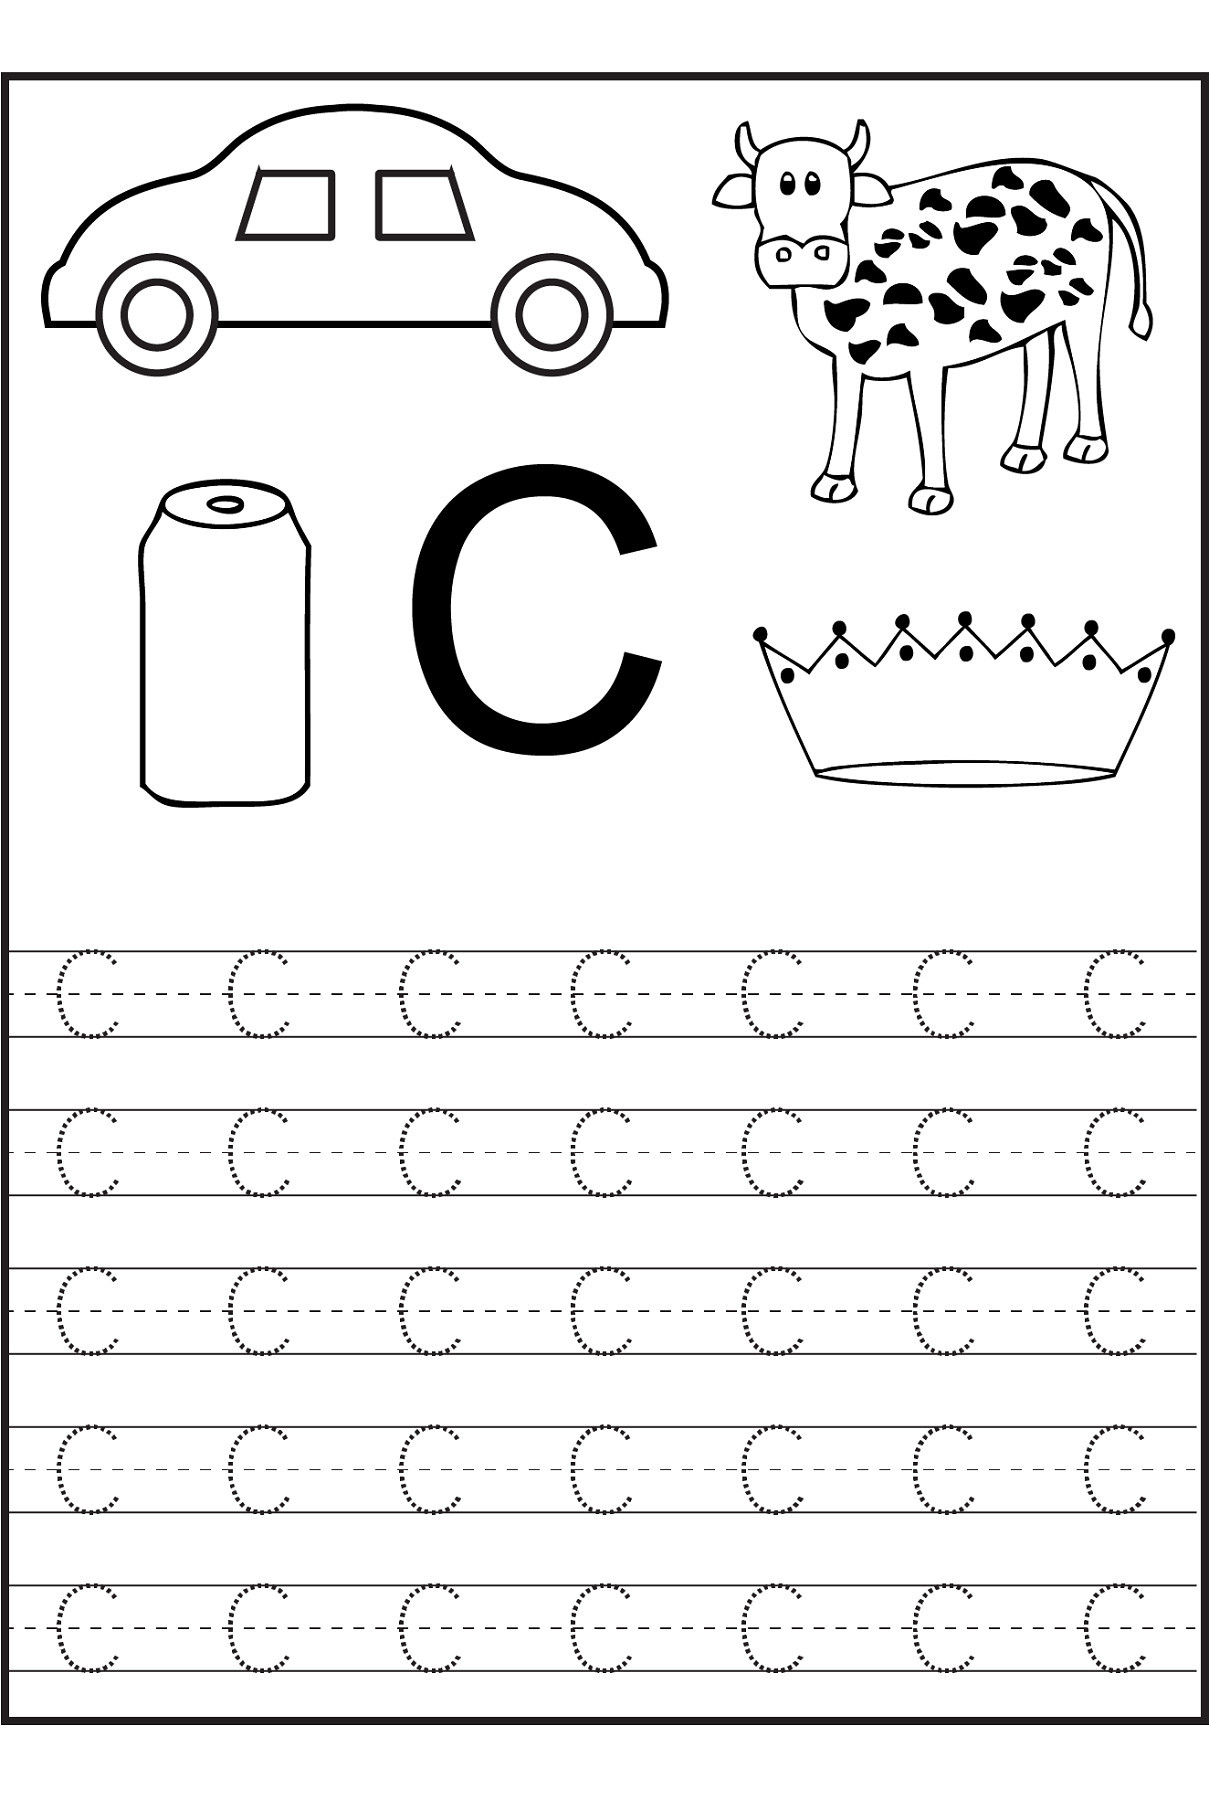 Letter D Worksheet Preschool 3 Letter D Activities for Preschool Worksheets Worksheets